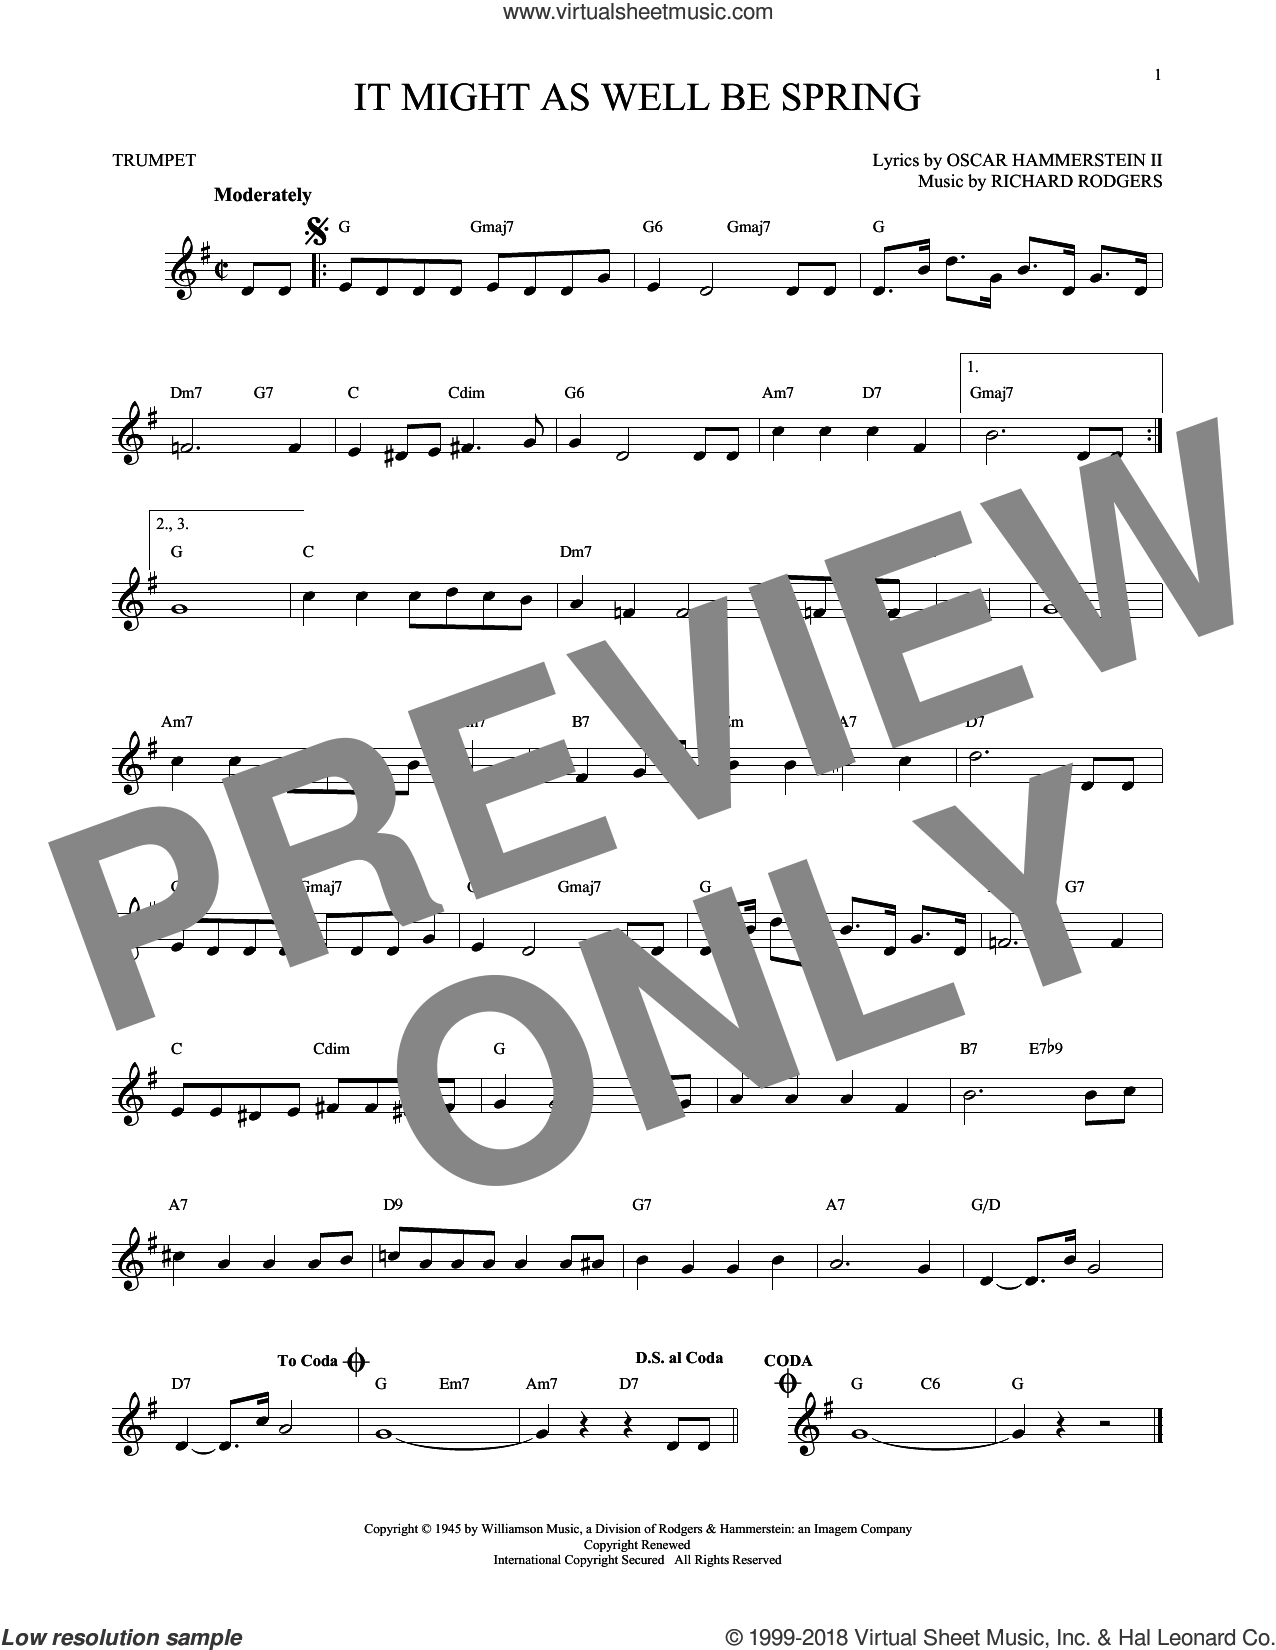 It Might As Well Be Spring sheet music for trumpet solo by Rodgers & Hammerstein, Oscar II Hammerstein and Richard Rodgers, intermediate skill level